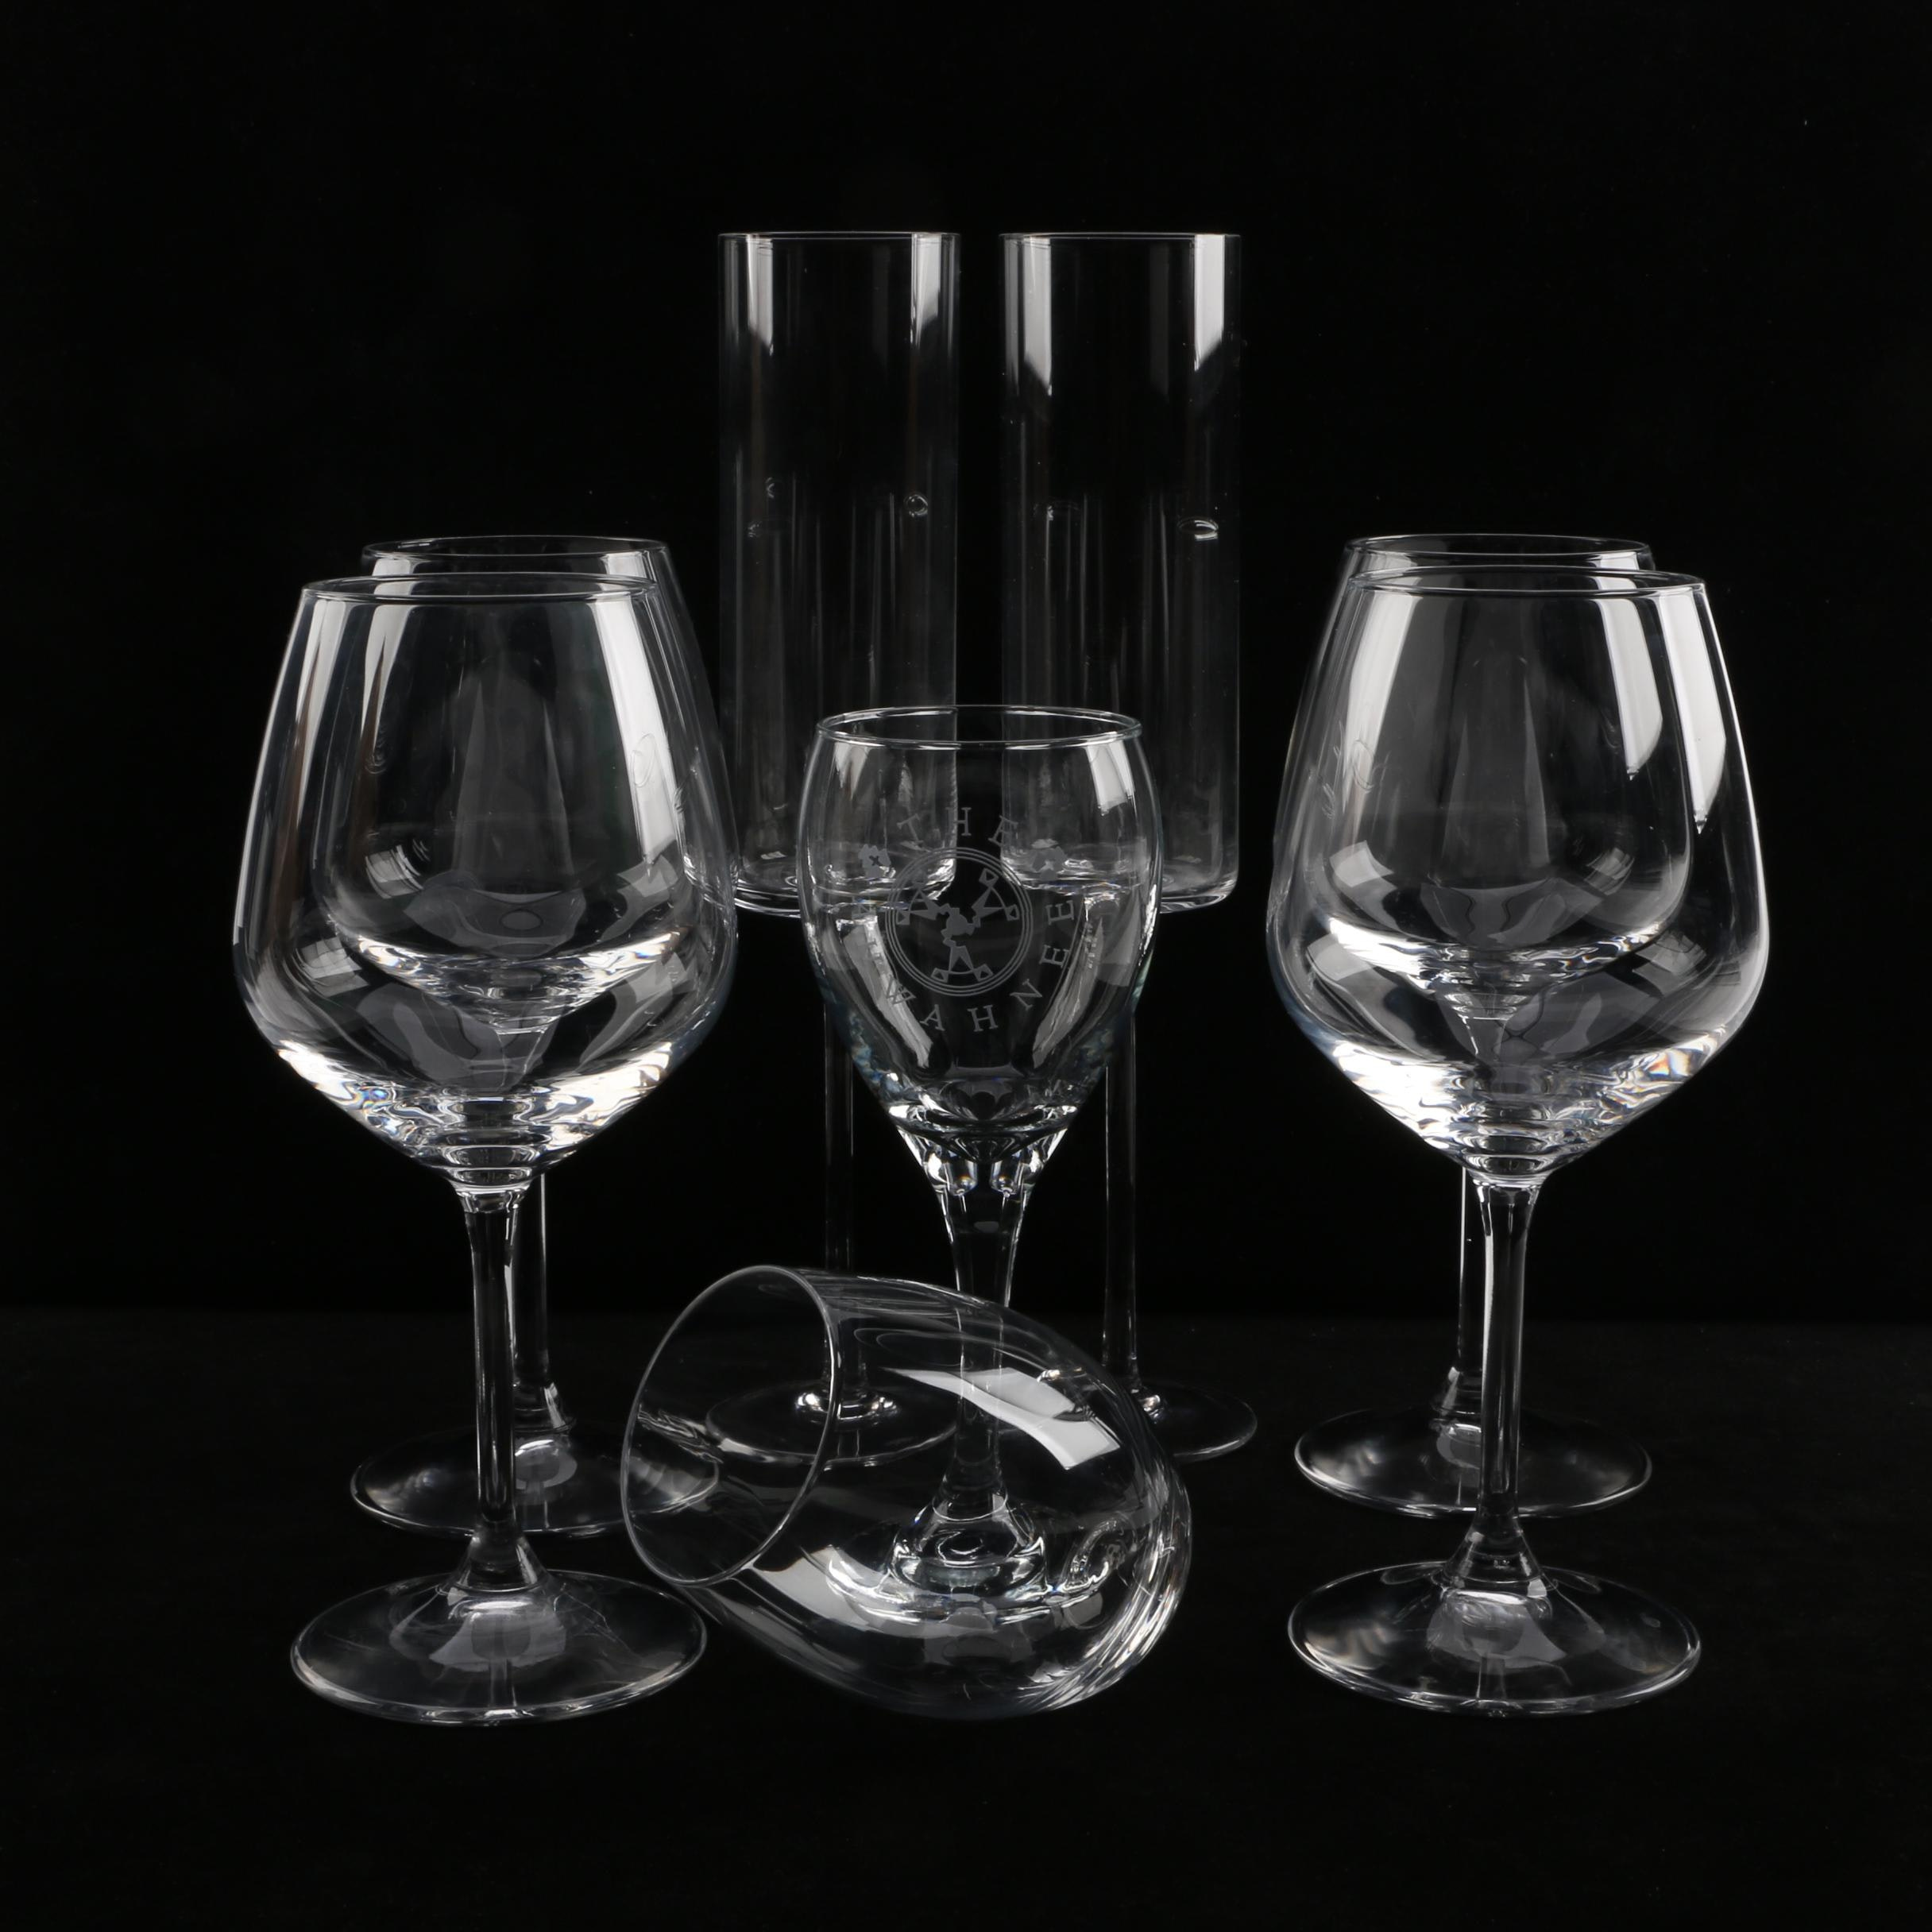 Glass Stemware Featuring Calvin Klein